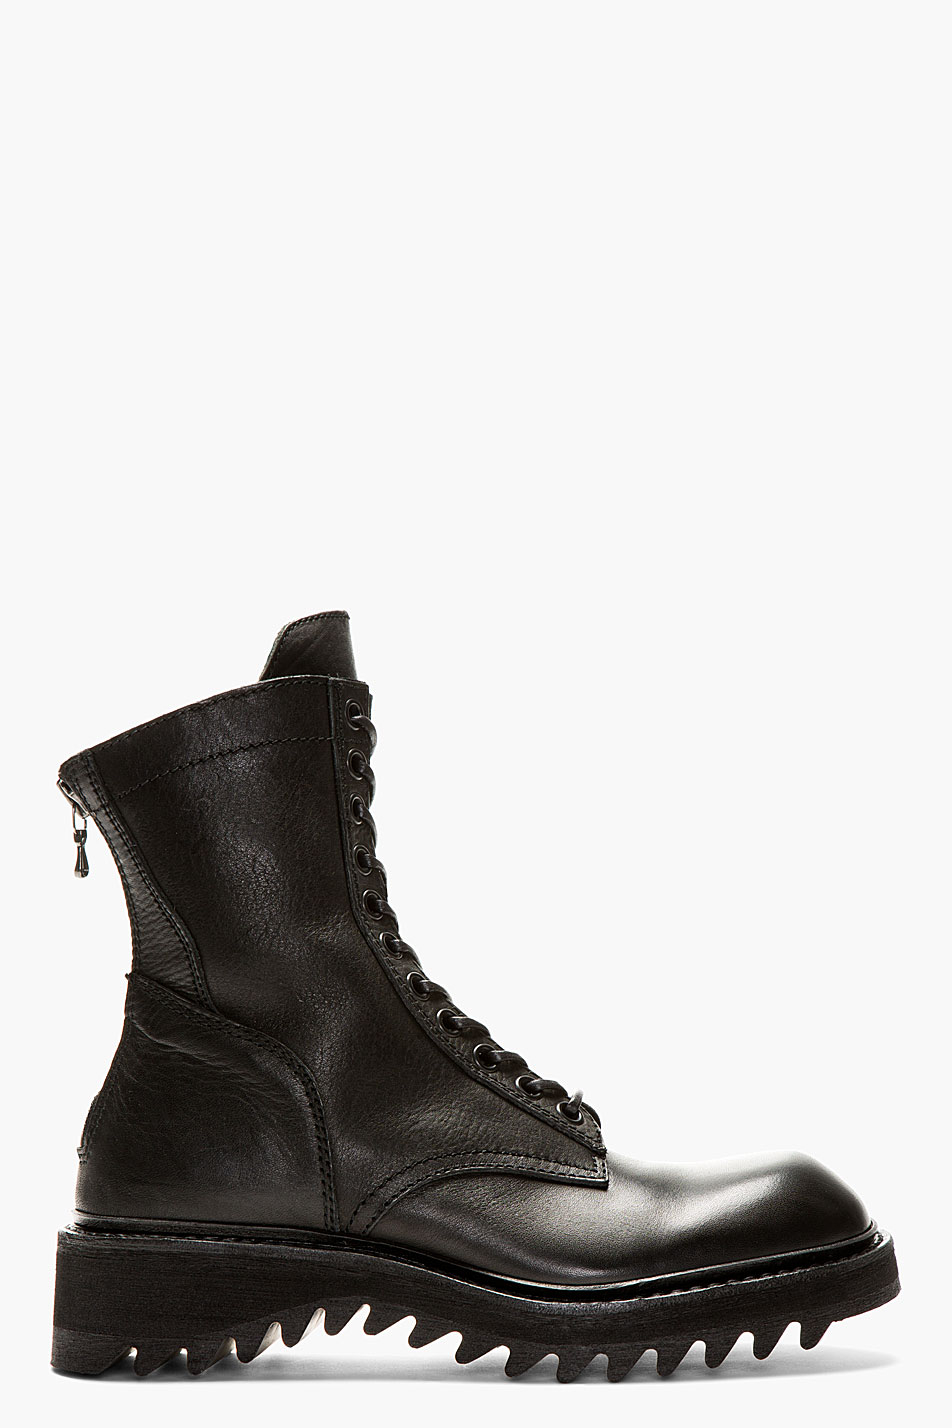 Julius Black Leather Zipped Combat Boots In Black For Men